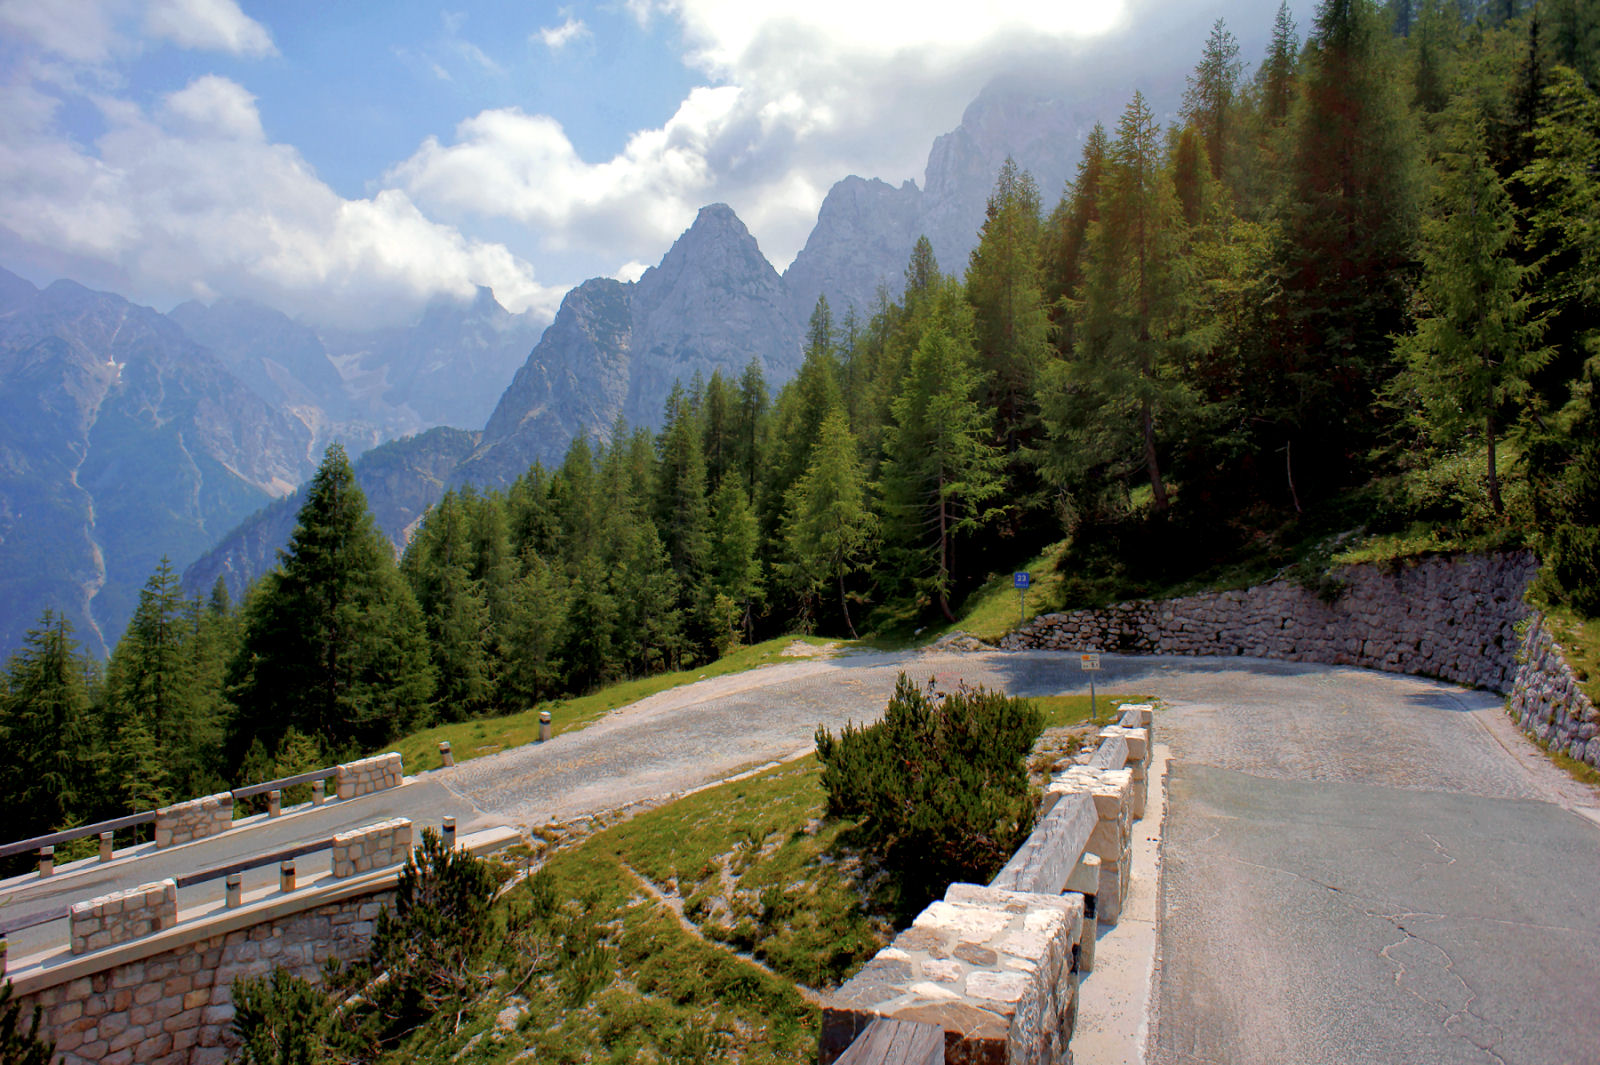 Hairpin turn number 23 on road to Vrsic Pass, Slovenia